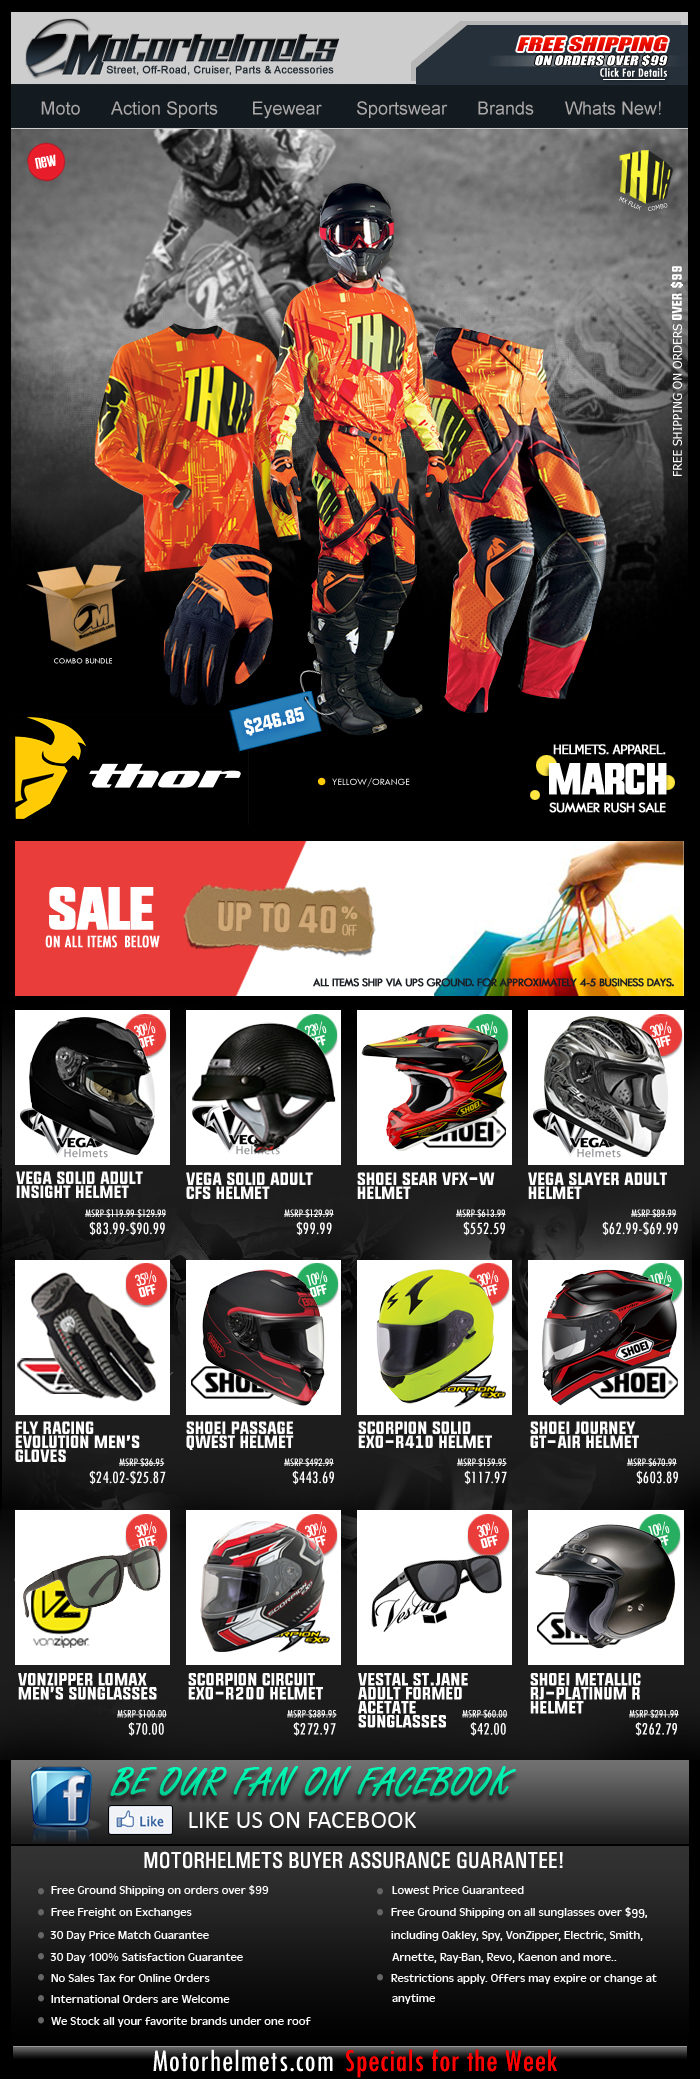 Up to 40% Off on Vega, Shoei and Fly Gear and Apparel!